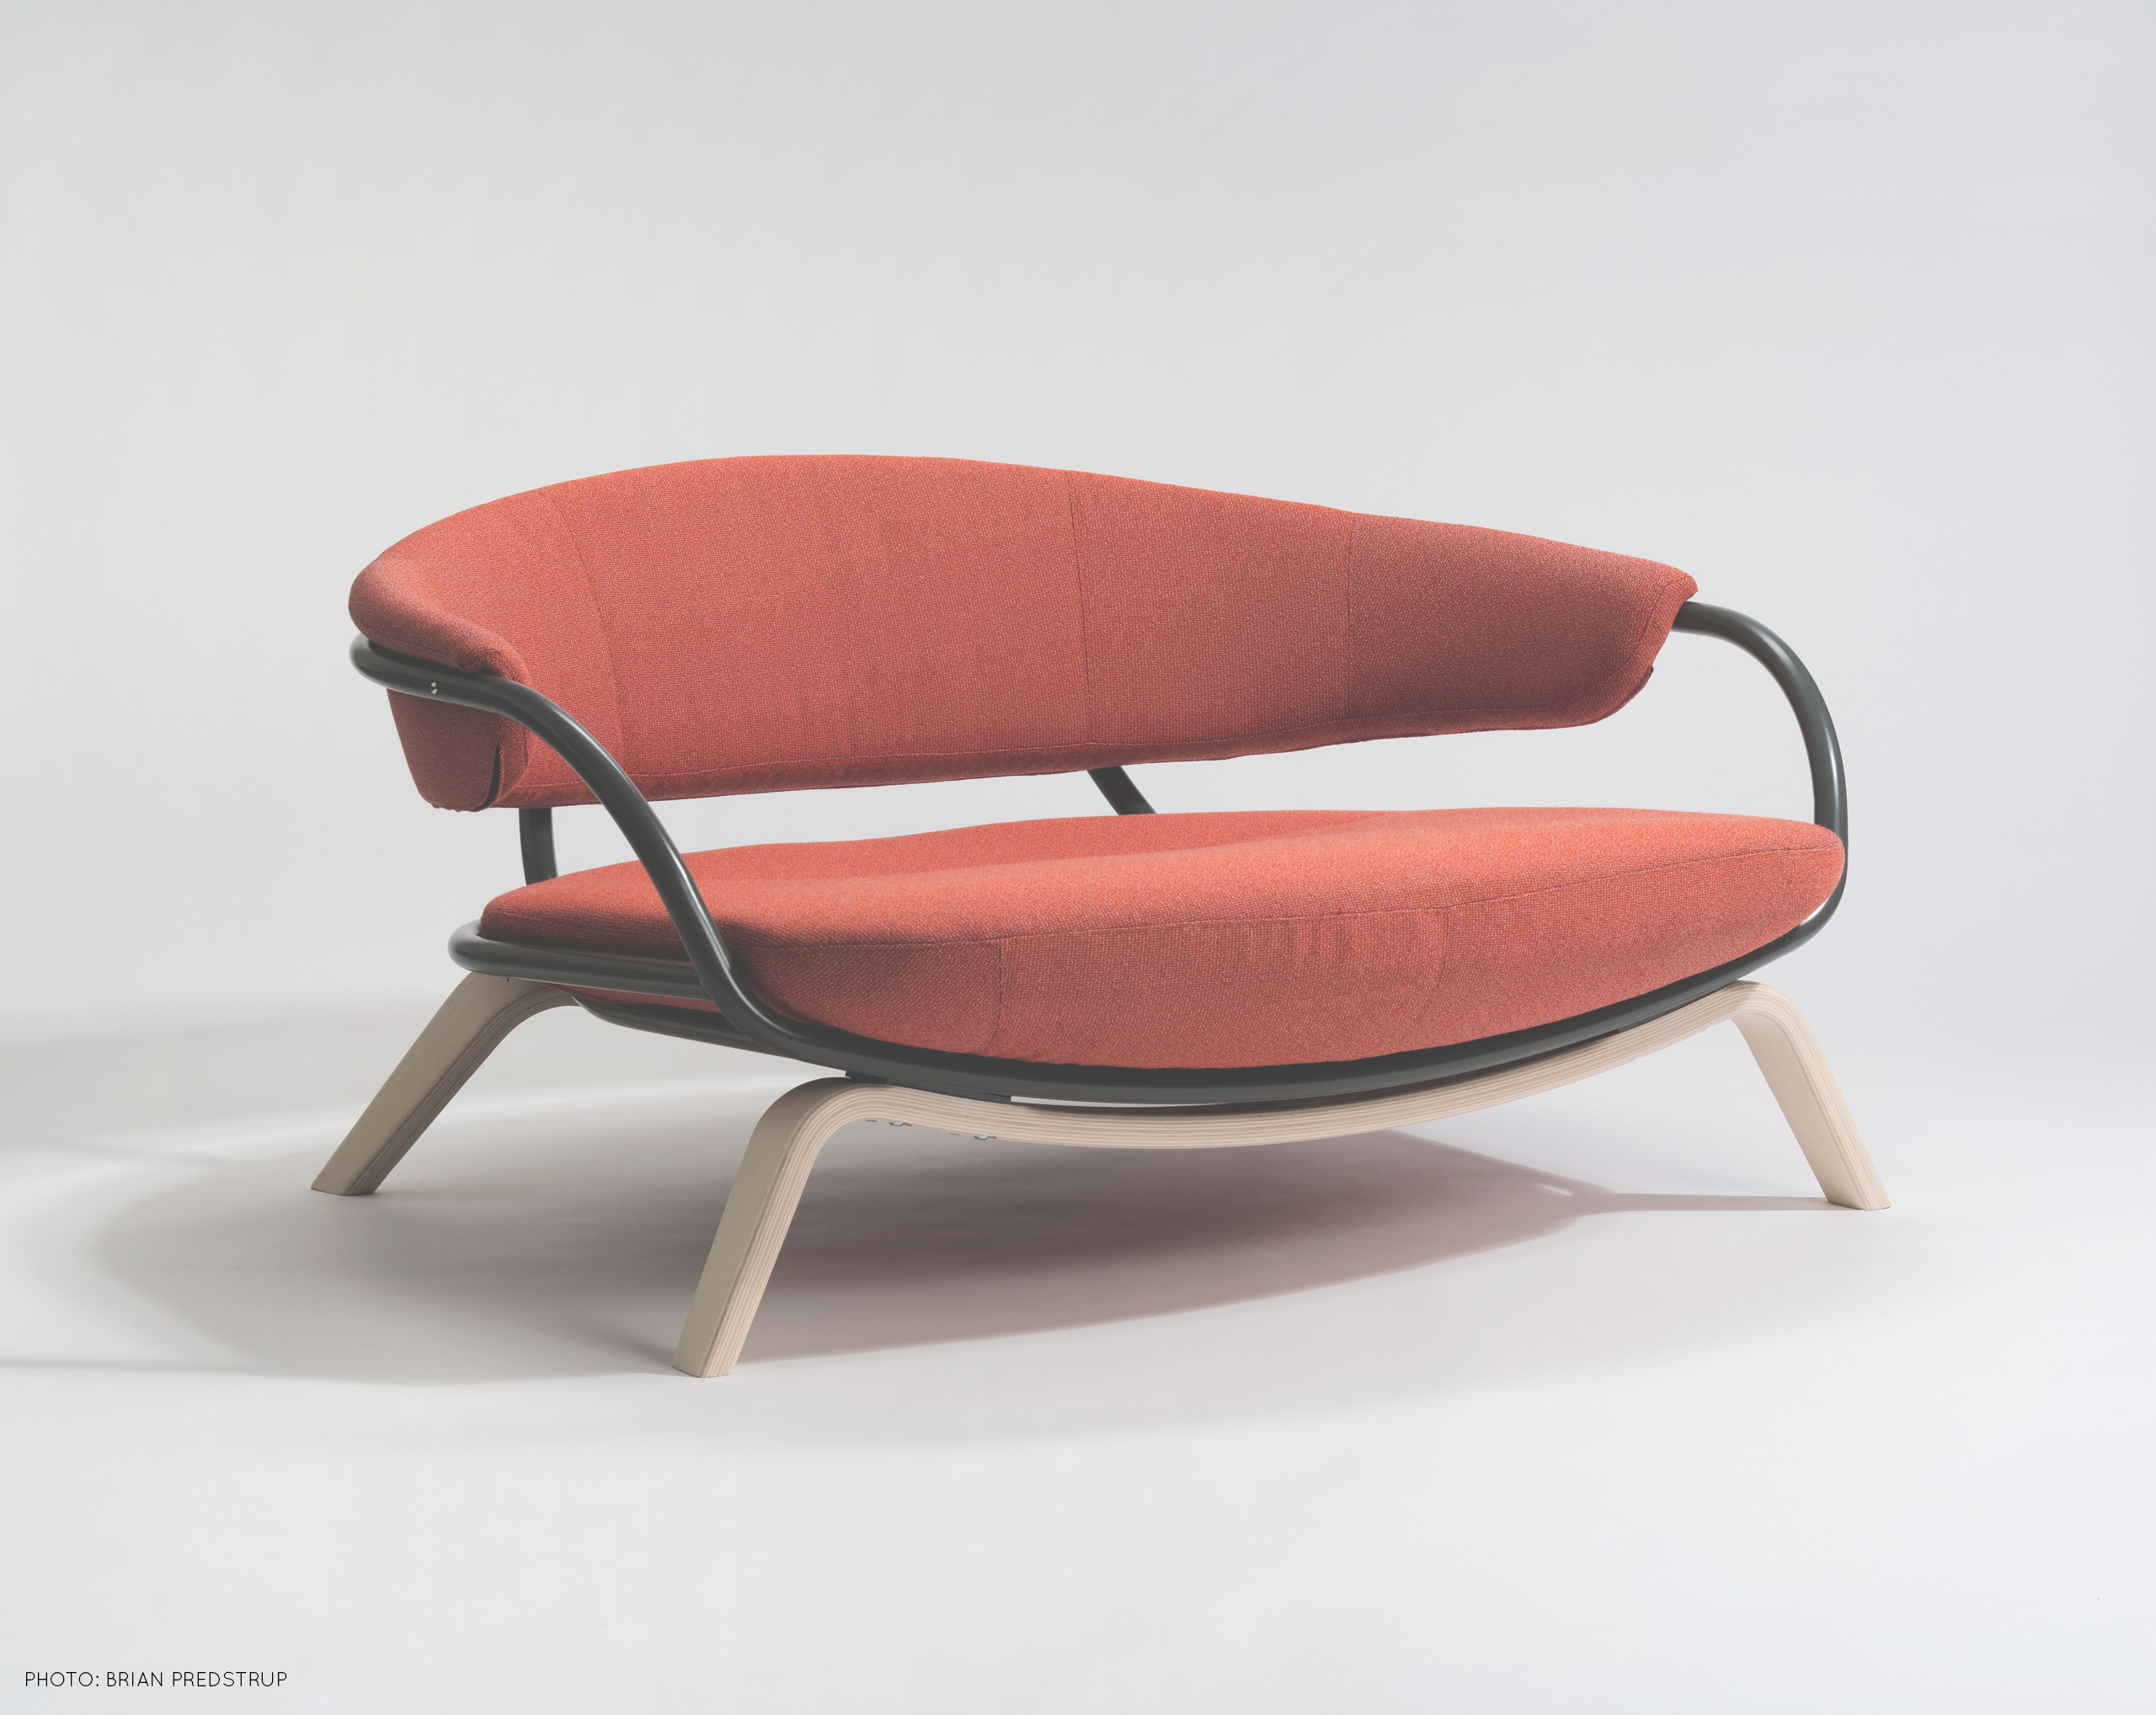 Orange armchair for two persons, inspired by Ingmar Bergman and built in Småland, by Sebastian Galo